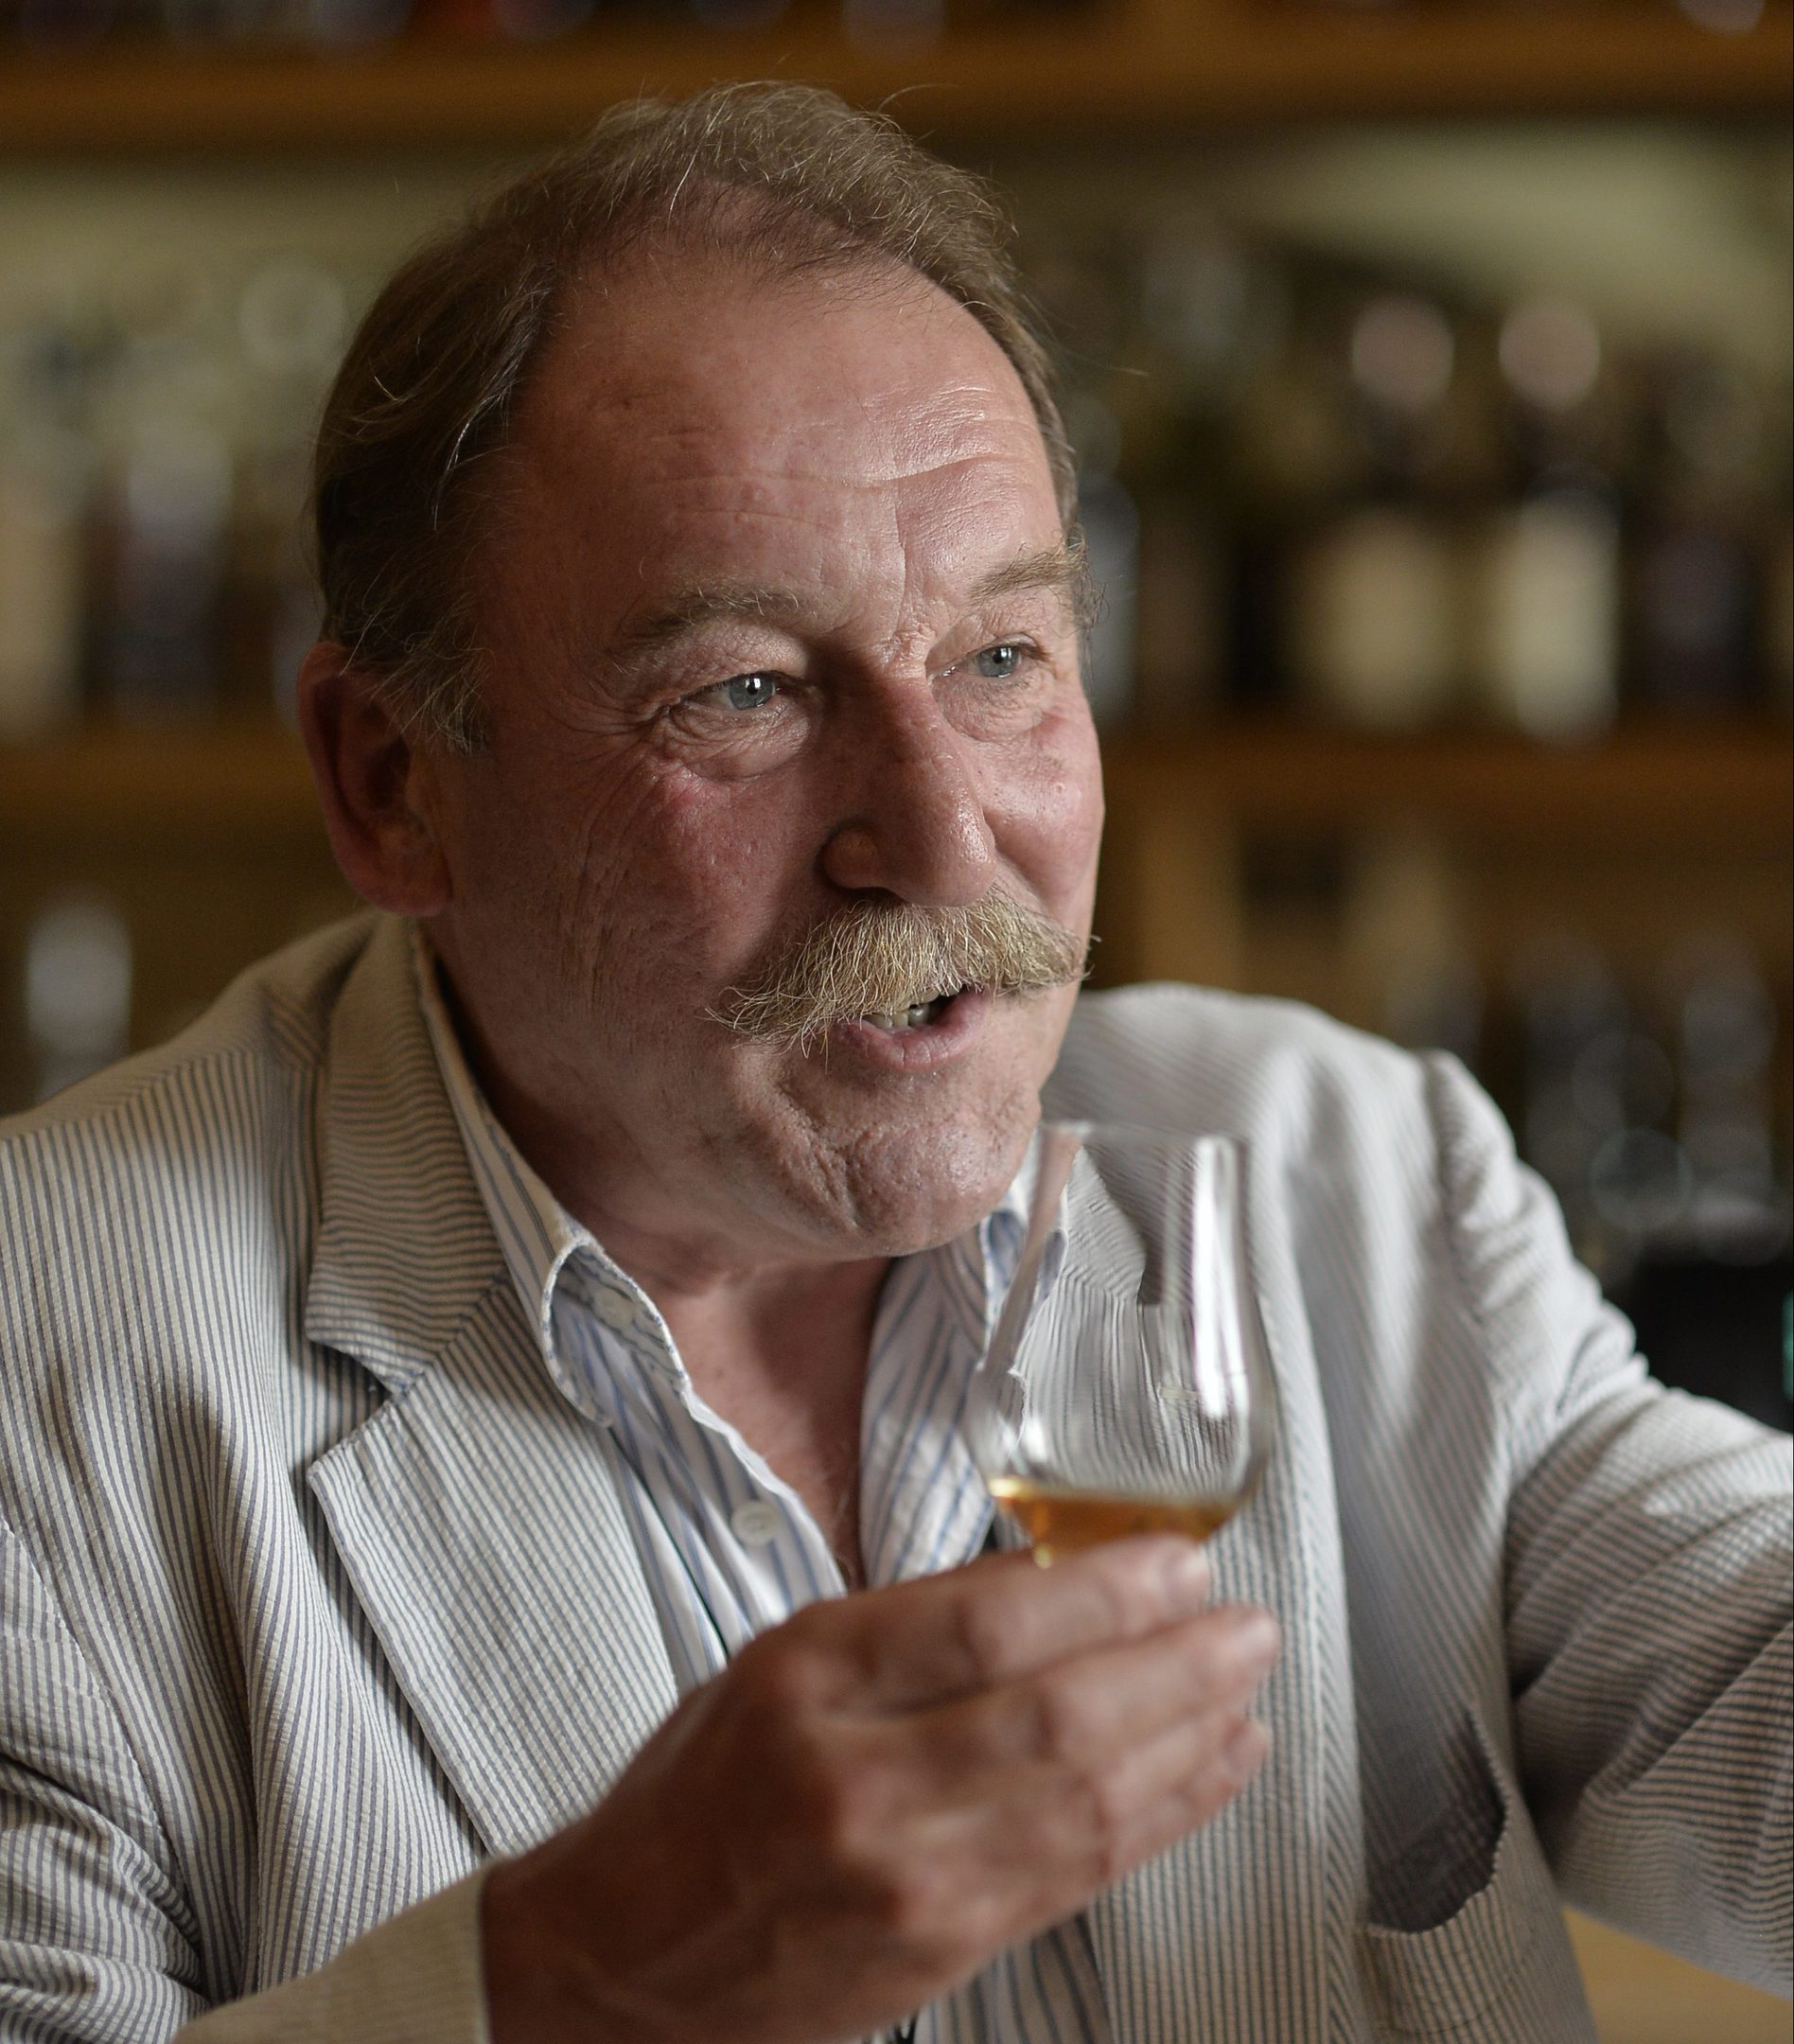 Whisky writer and researcher Charles MacLean will be a special guest at this year's festival